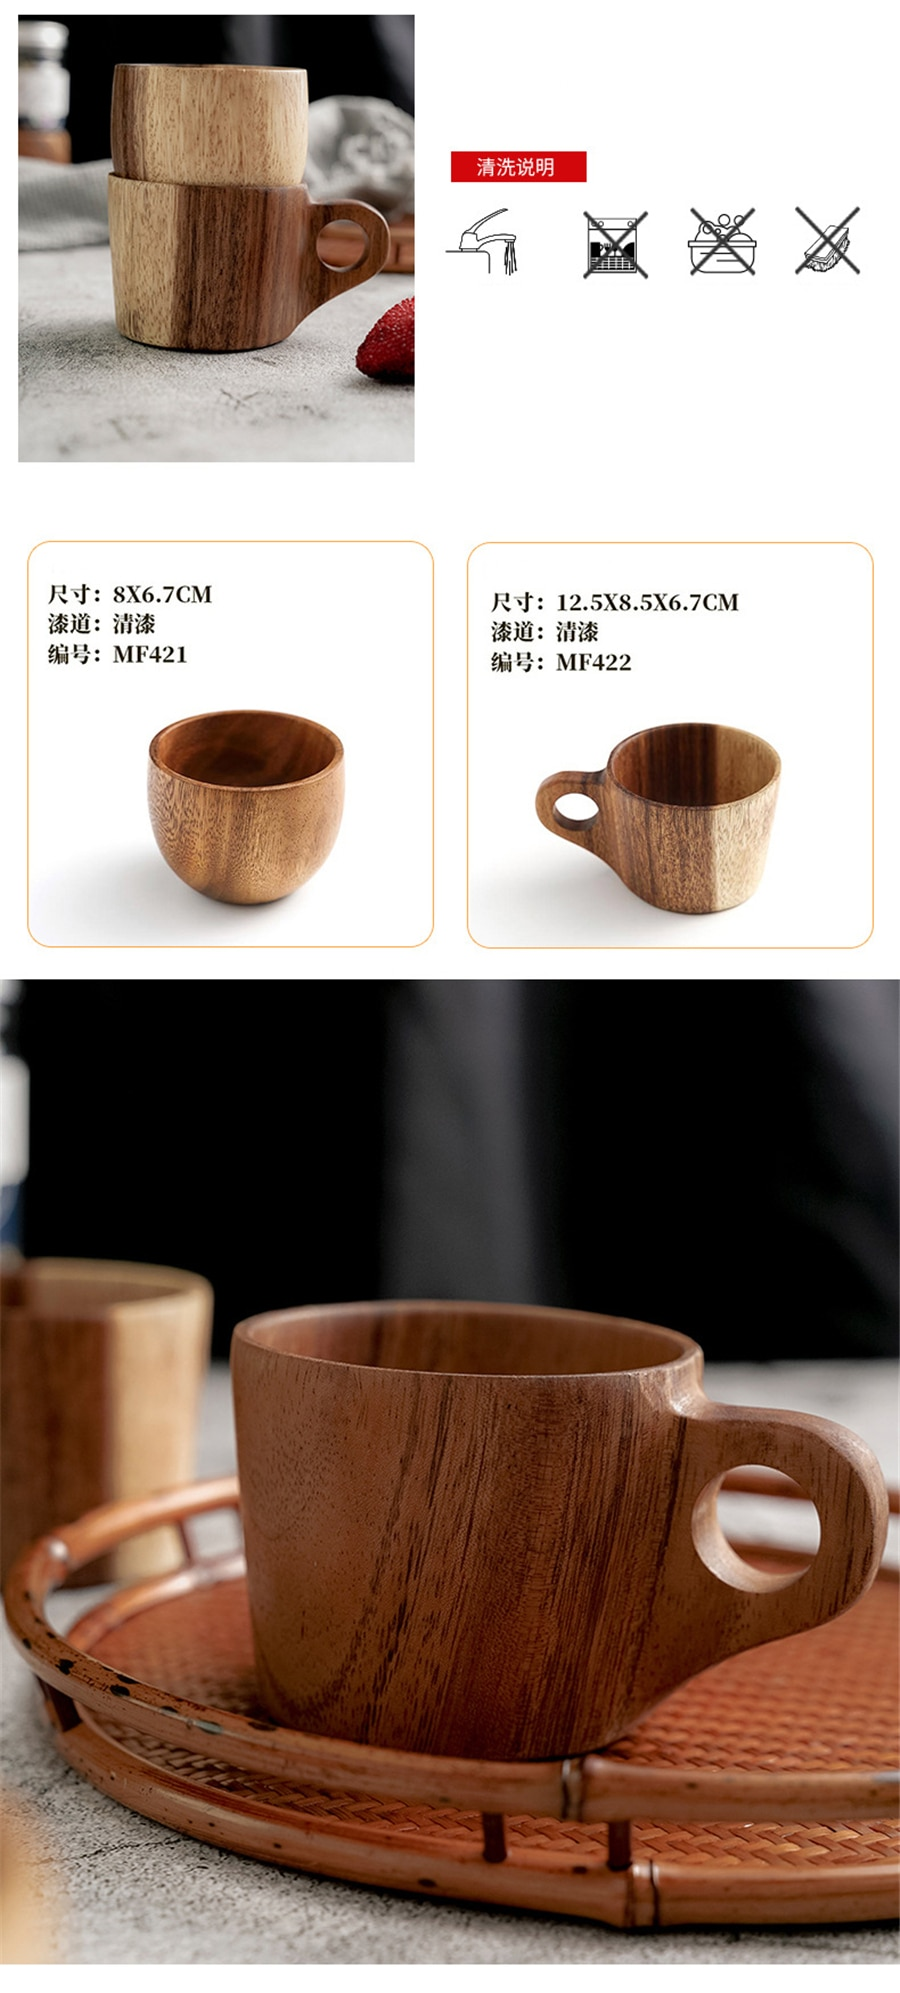 200ml Handmade Natural Wooden Coffee Cups Milk Tea Water Cup Outdoor Wood Wine Cup Drinking Mugs Portable for Home Gifts